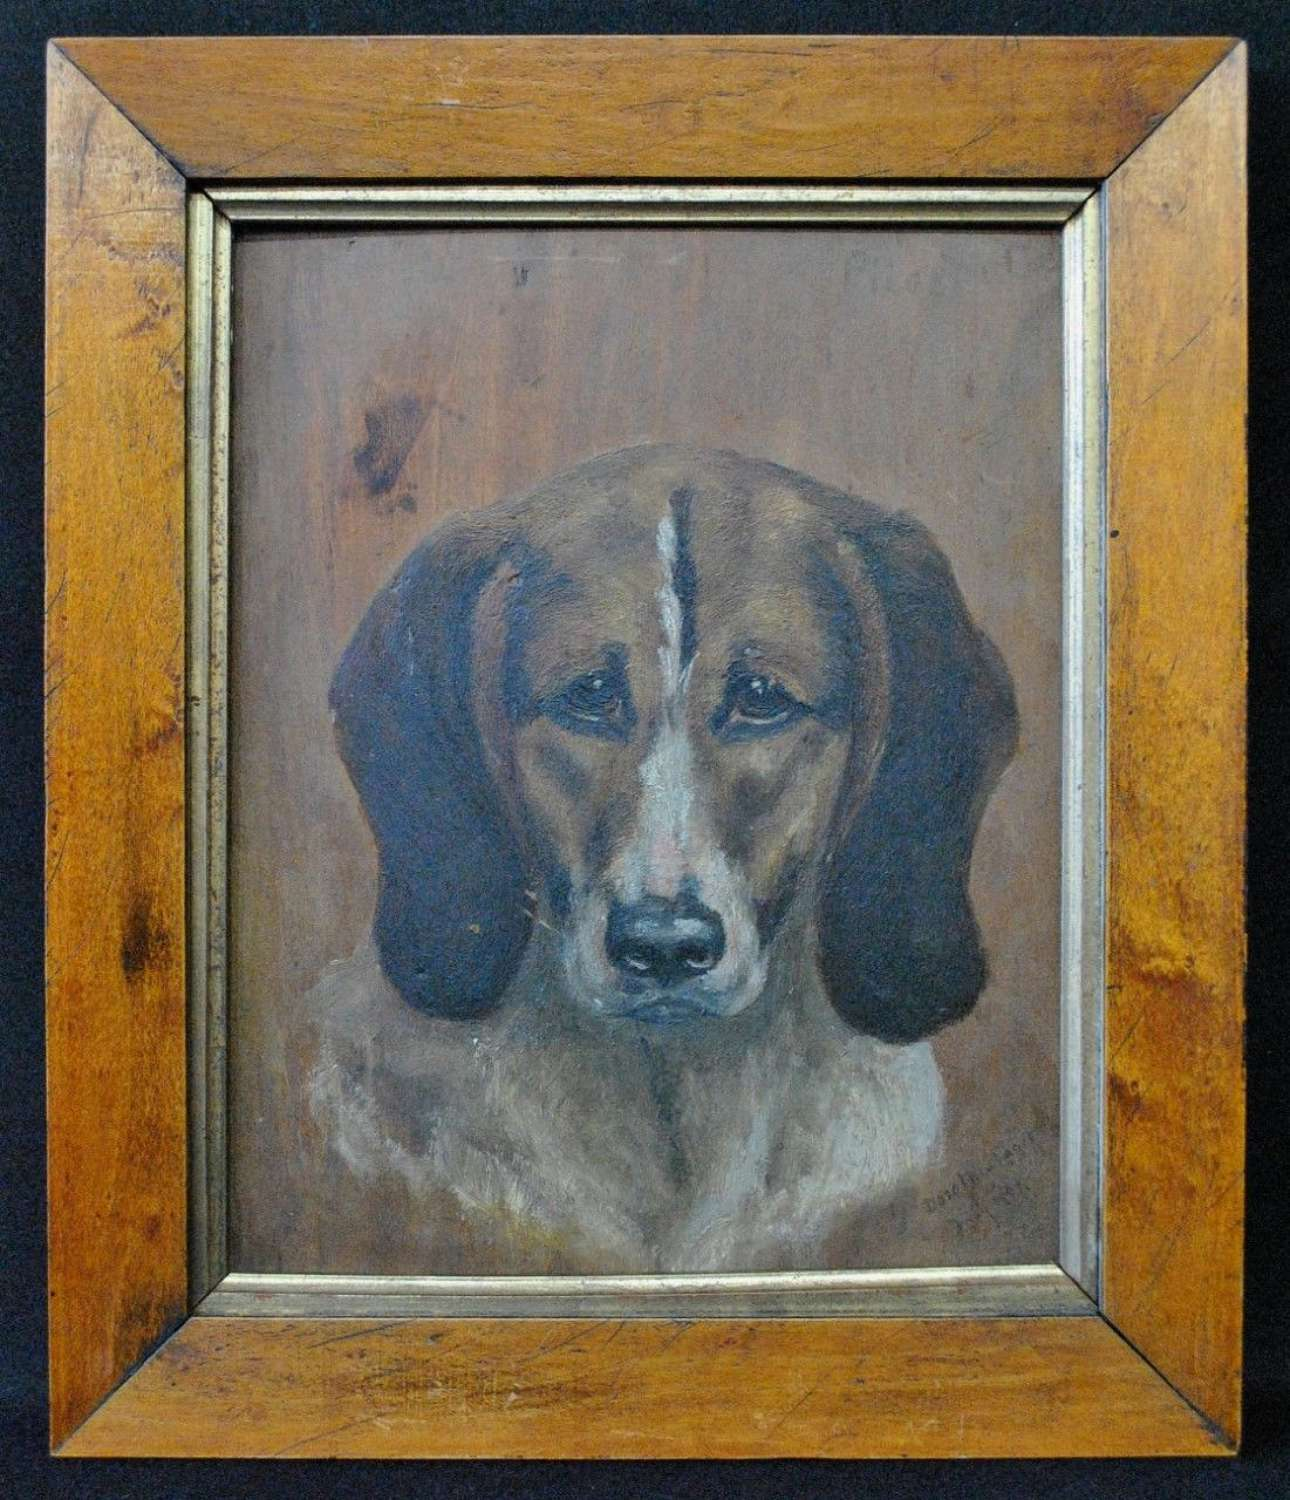 PORTRAIT OF A HOUND